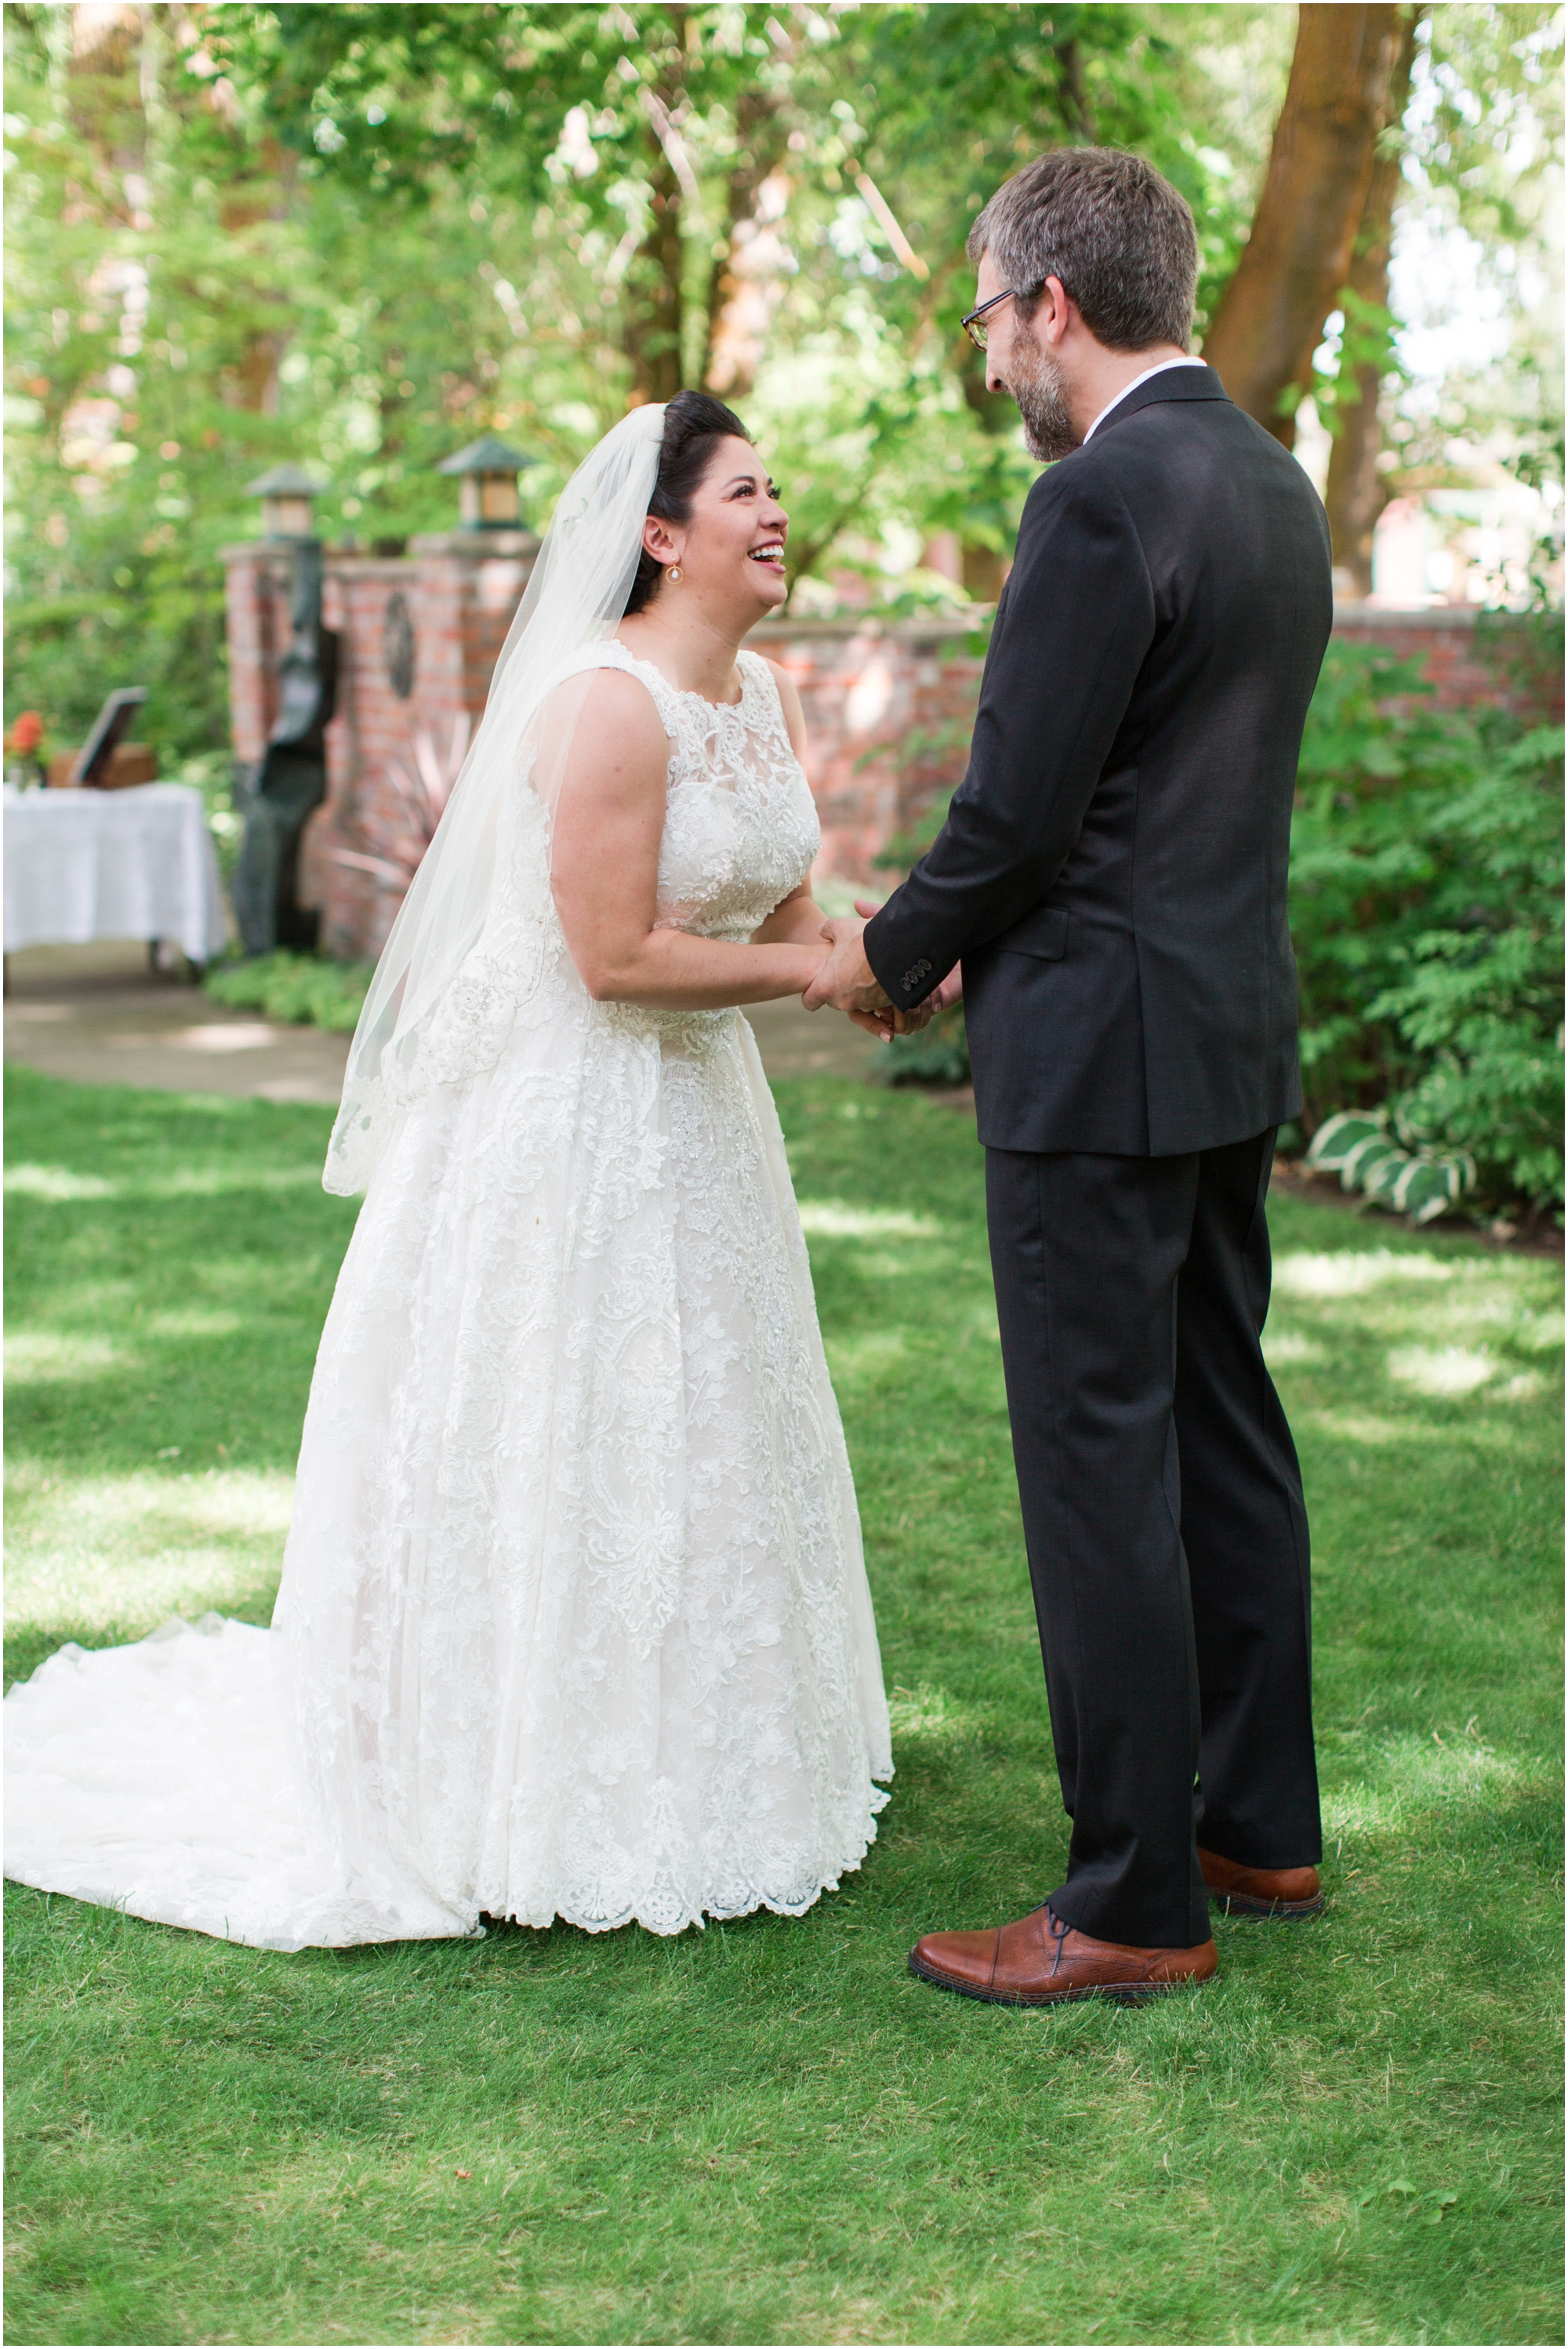 Garden wedding in Ellensburg, WA. Photos by Briana Calderon Photography based in the greater Seattle-Tacoma Area._1308.jpg